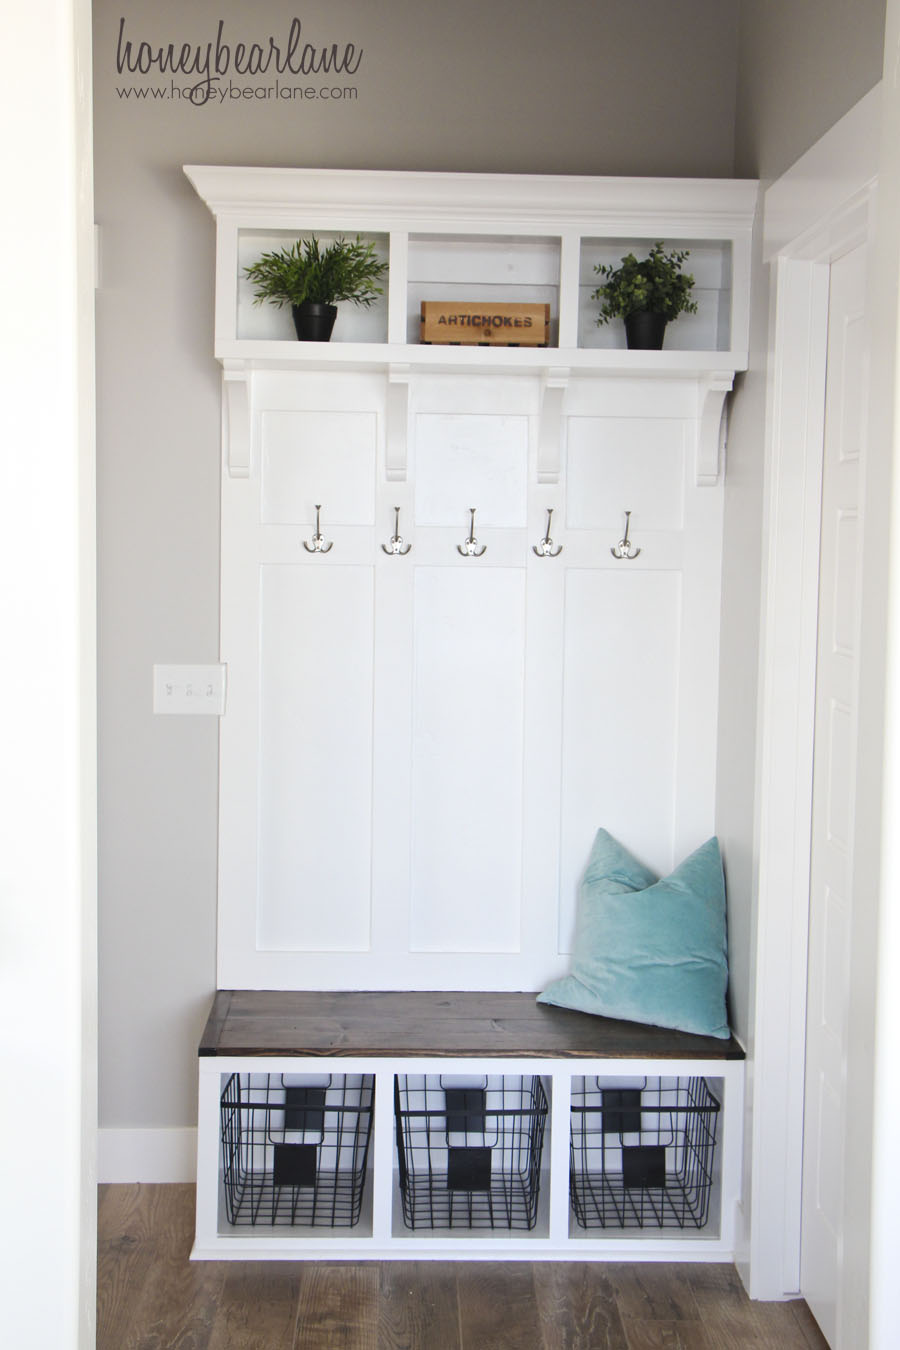 Diy mudroom bench part 2 honeybear lane Create our own room design